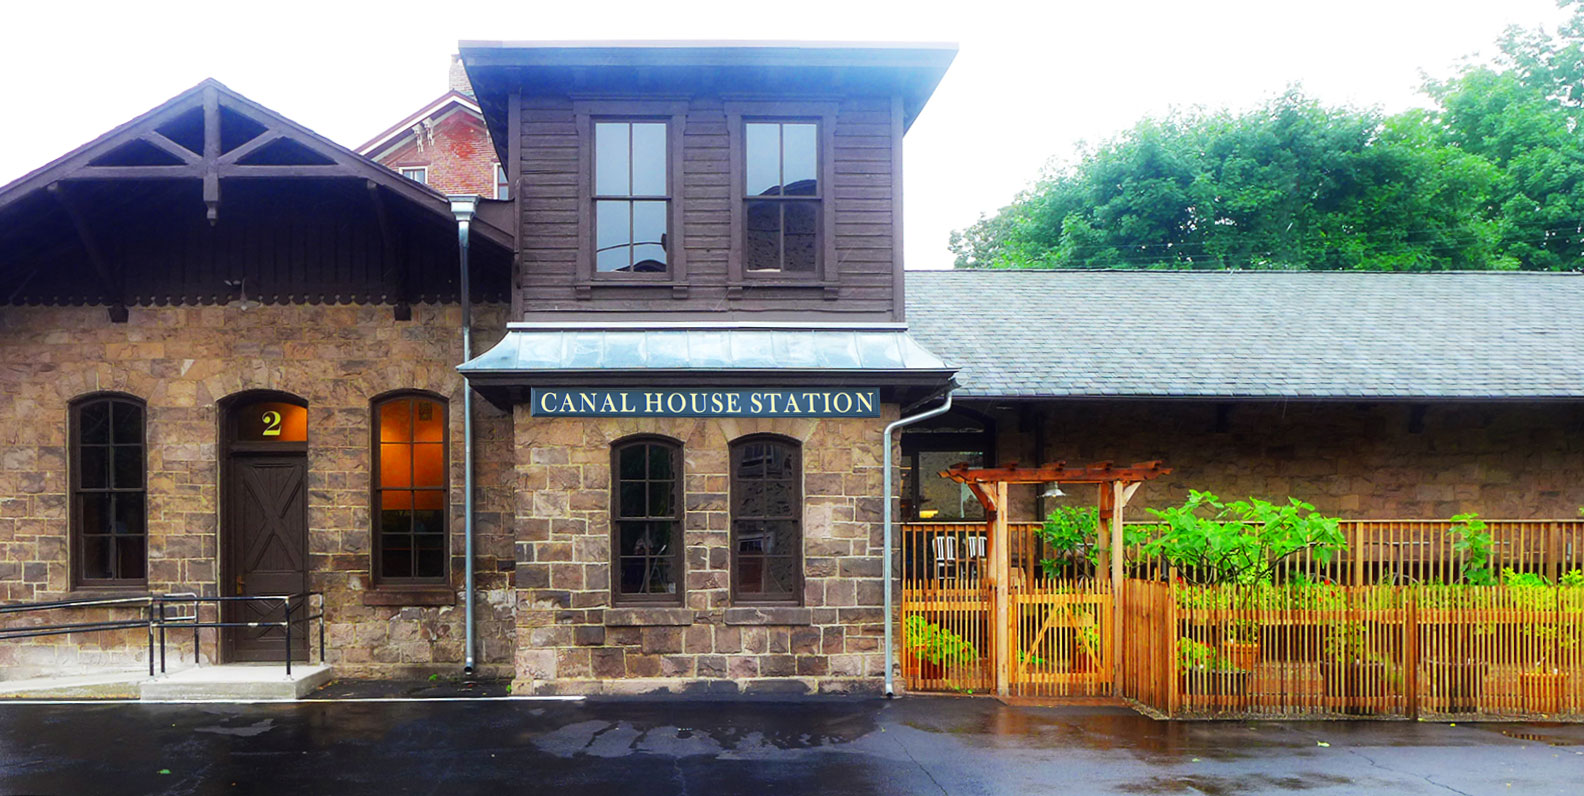 Canal-House-Station-today-with-sign.jpg